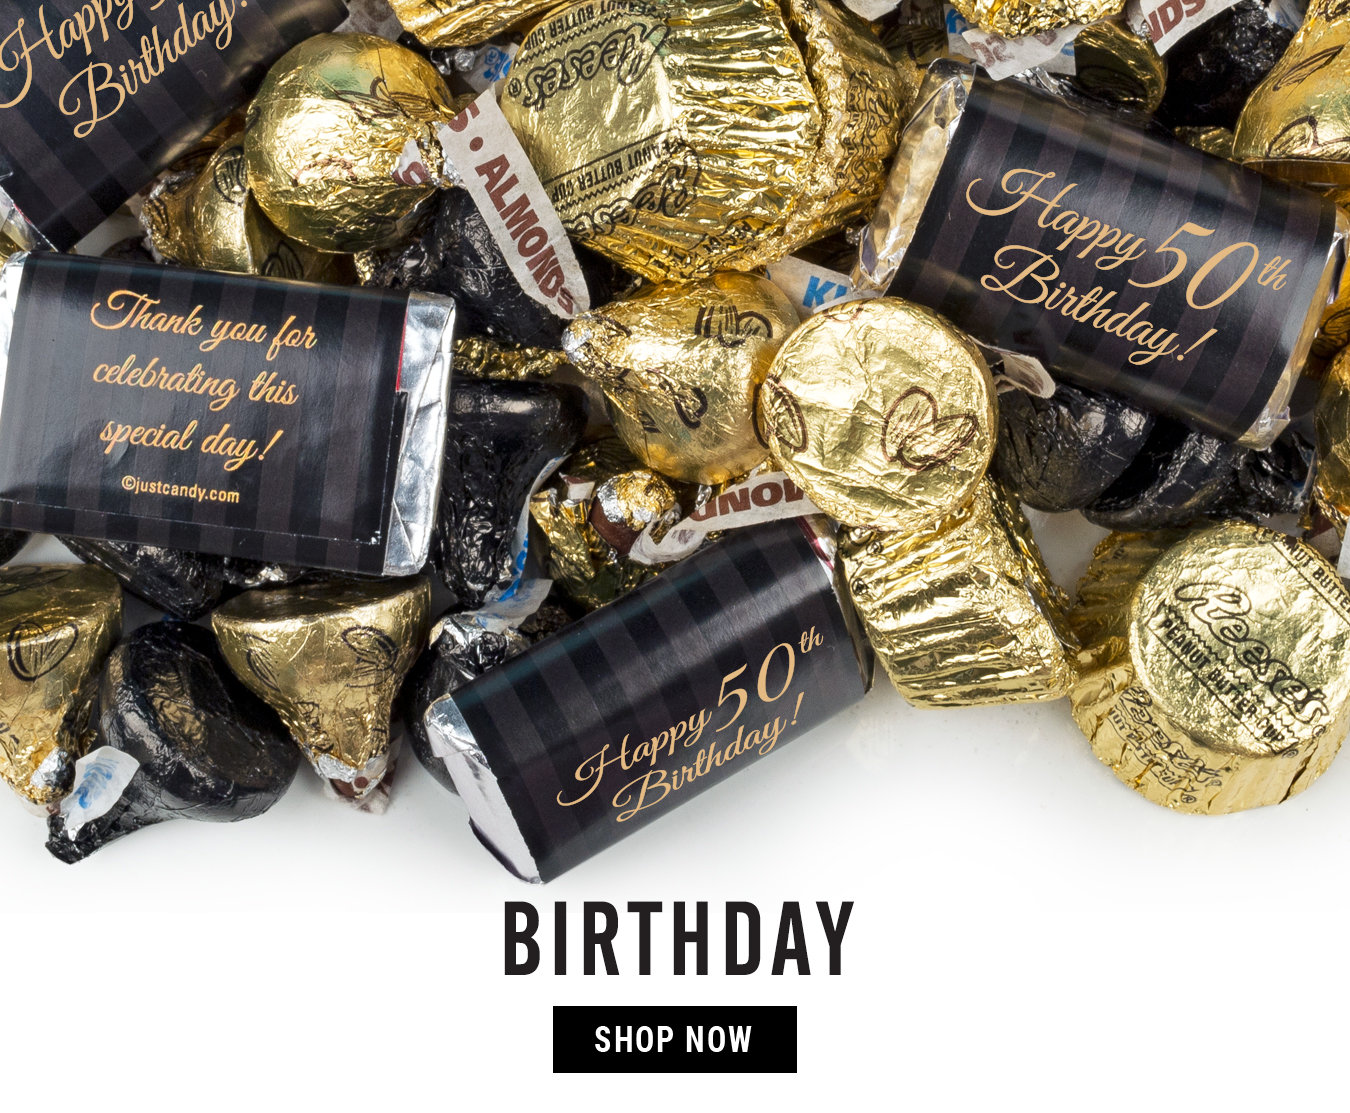 30% off Exclusive Hershey's Birthday Mixes